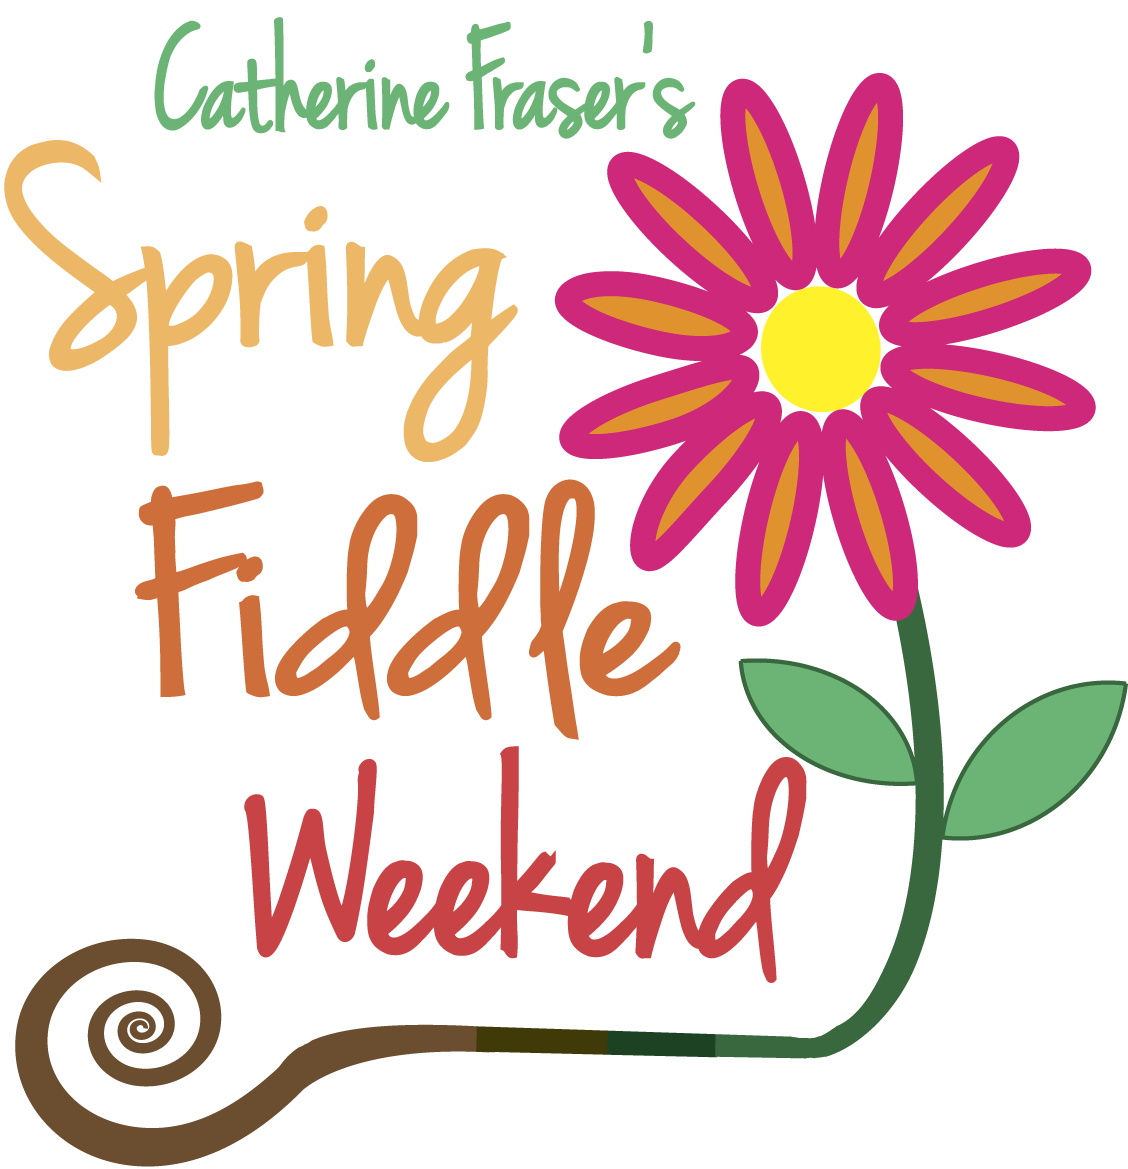 Spring FIddle Weekend